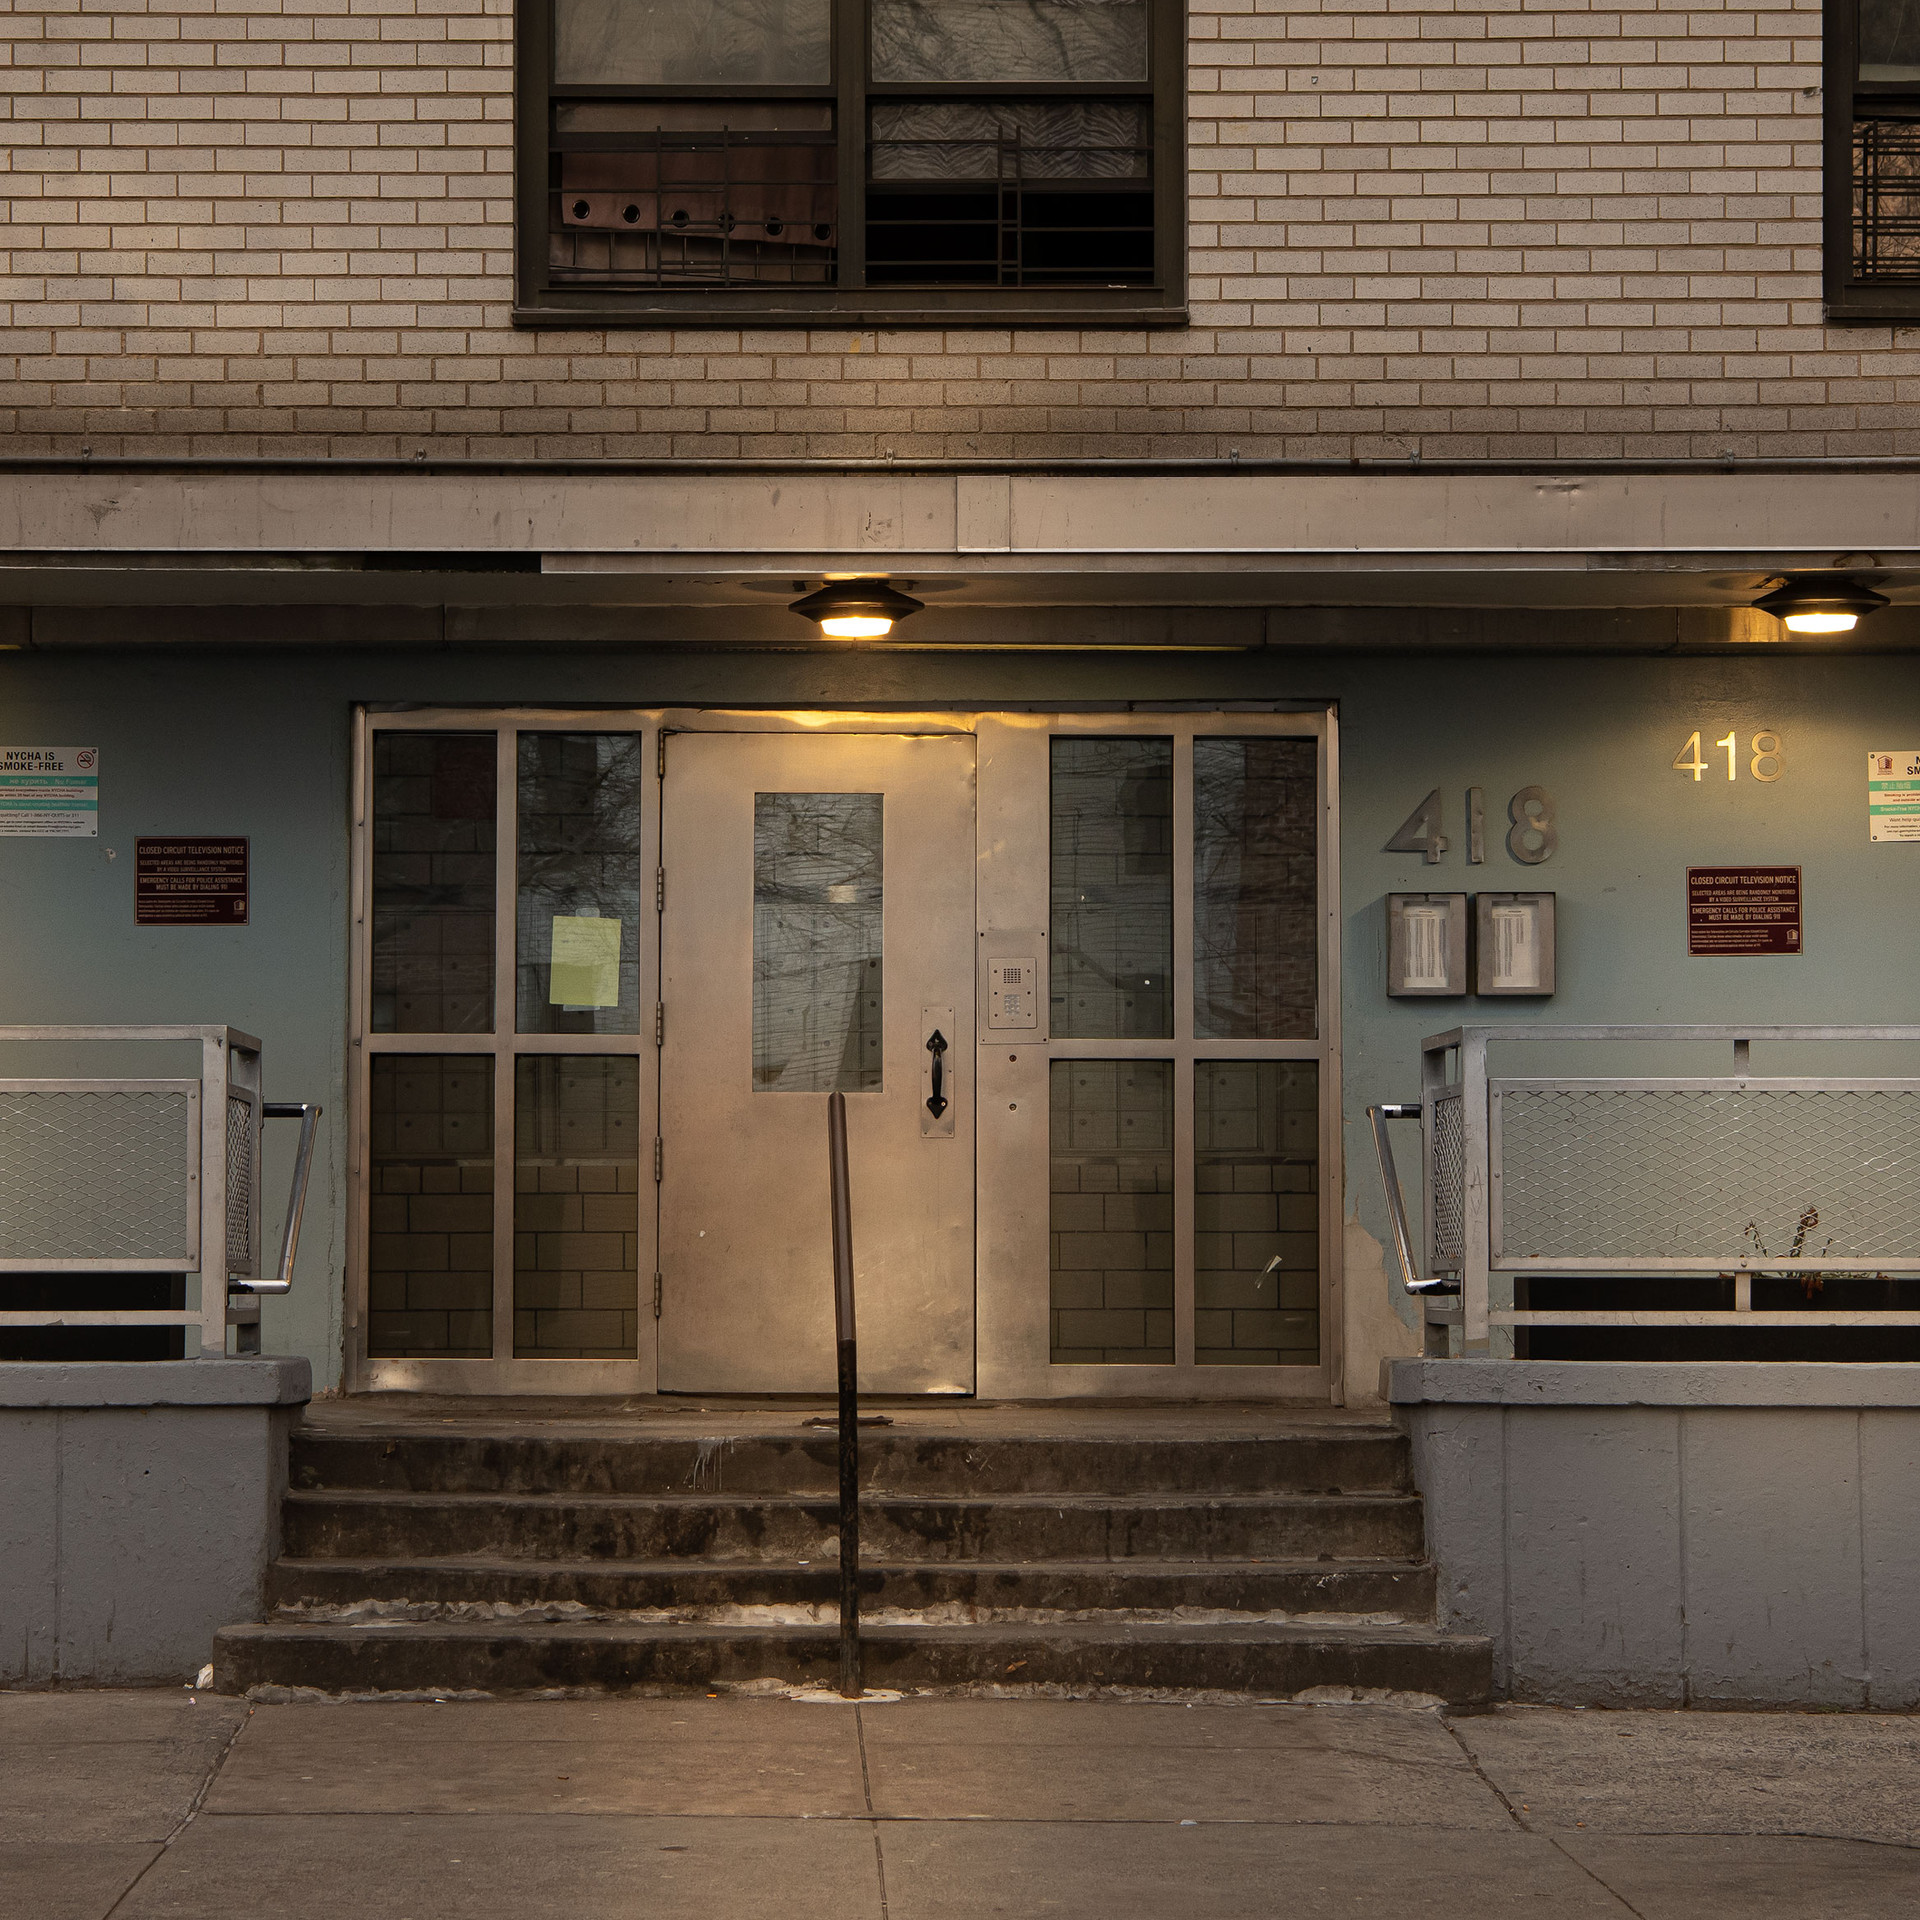 418 New York Intimate Limited Edition Photography